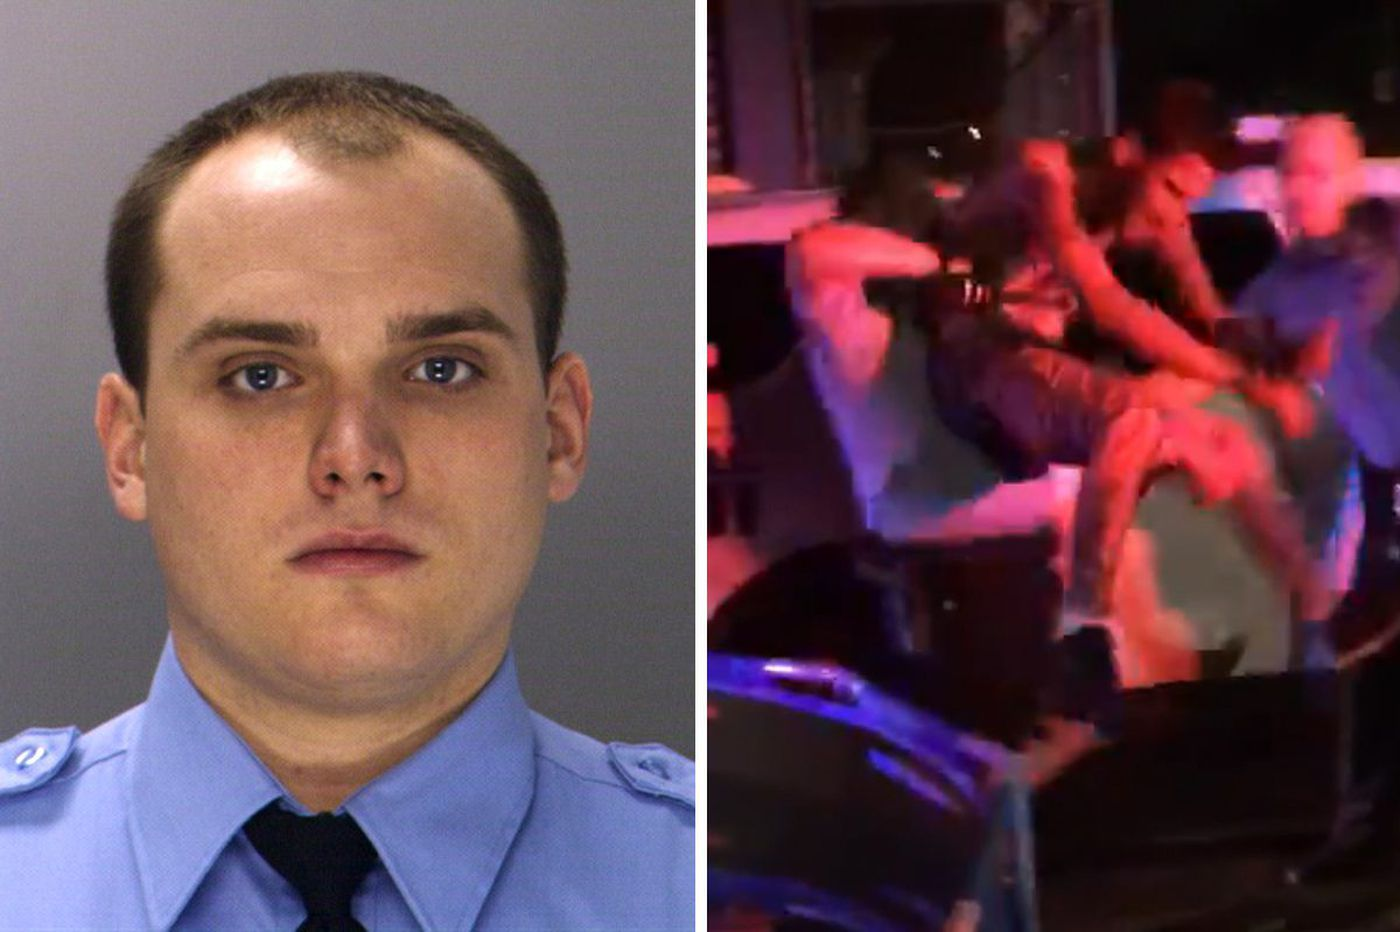 Former Philly police officer arrested on assault charges